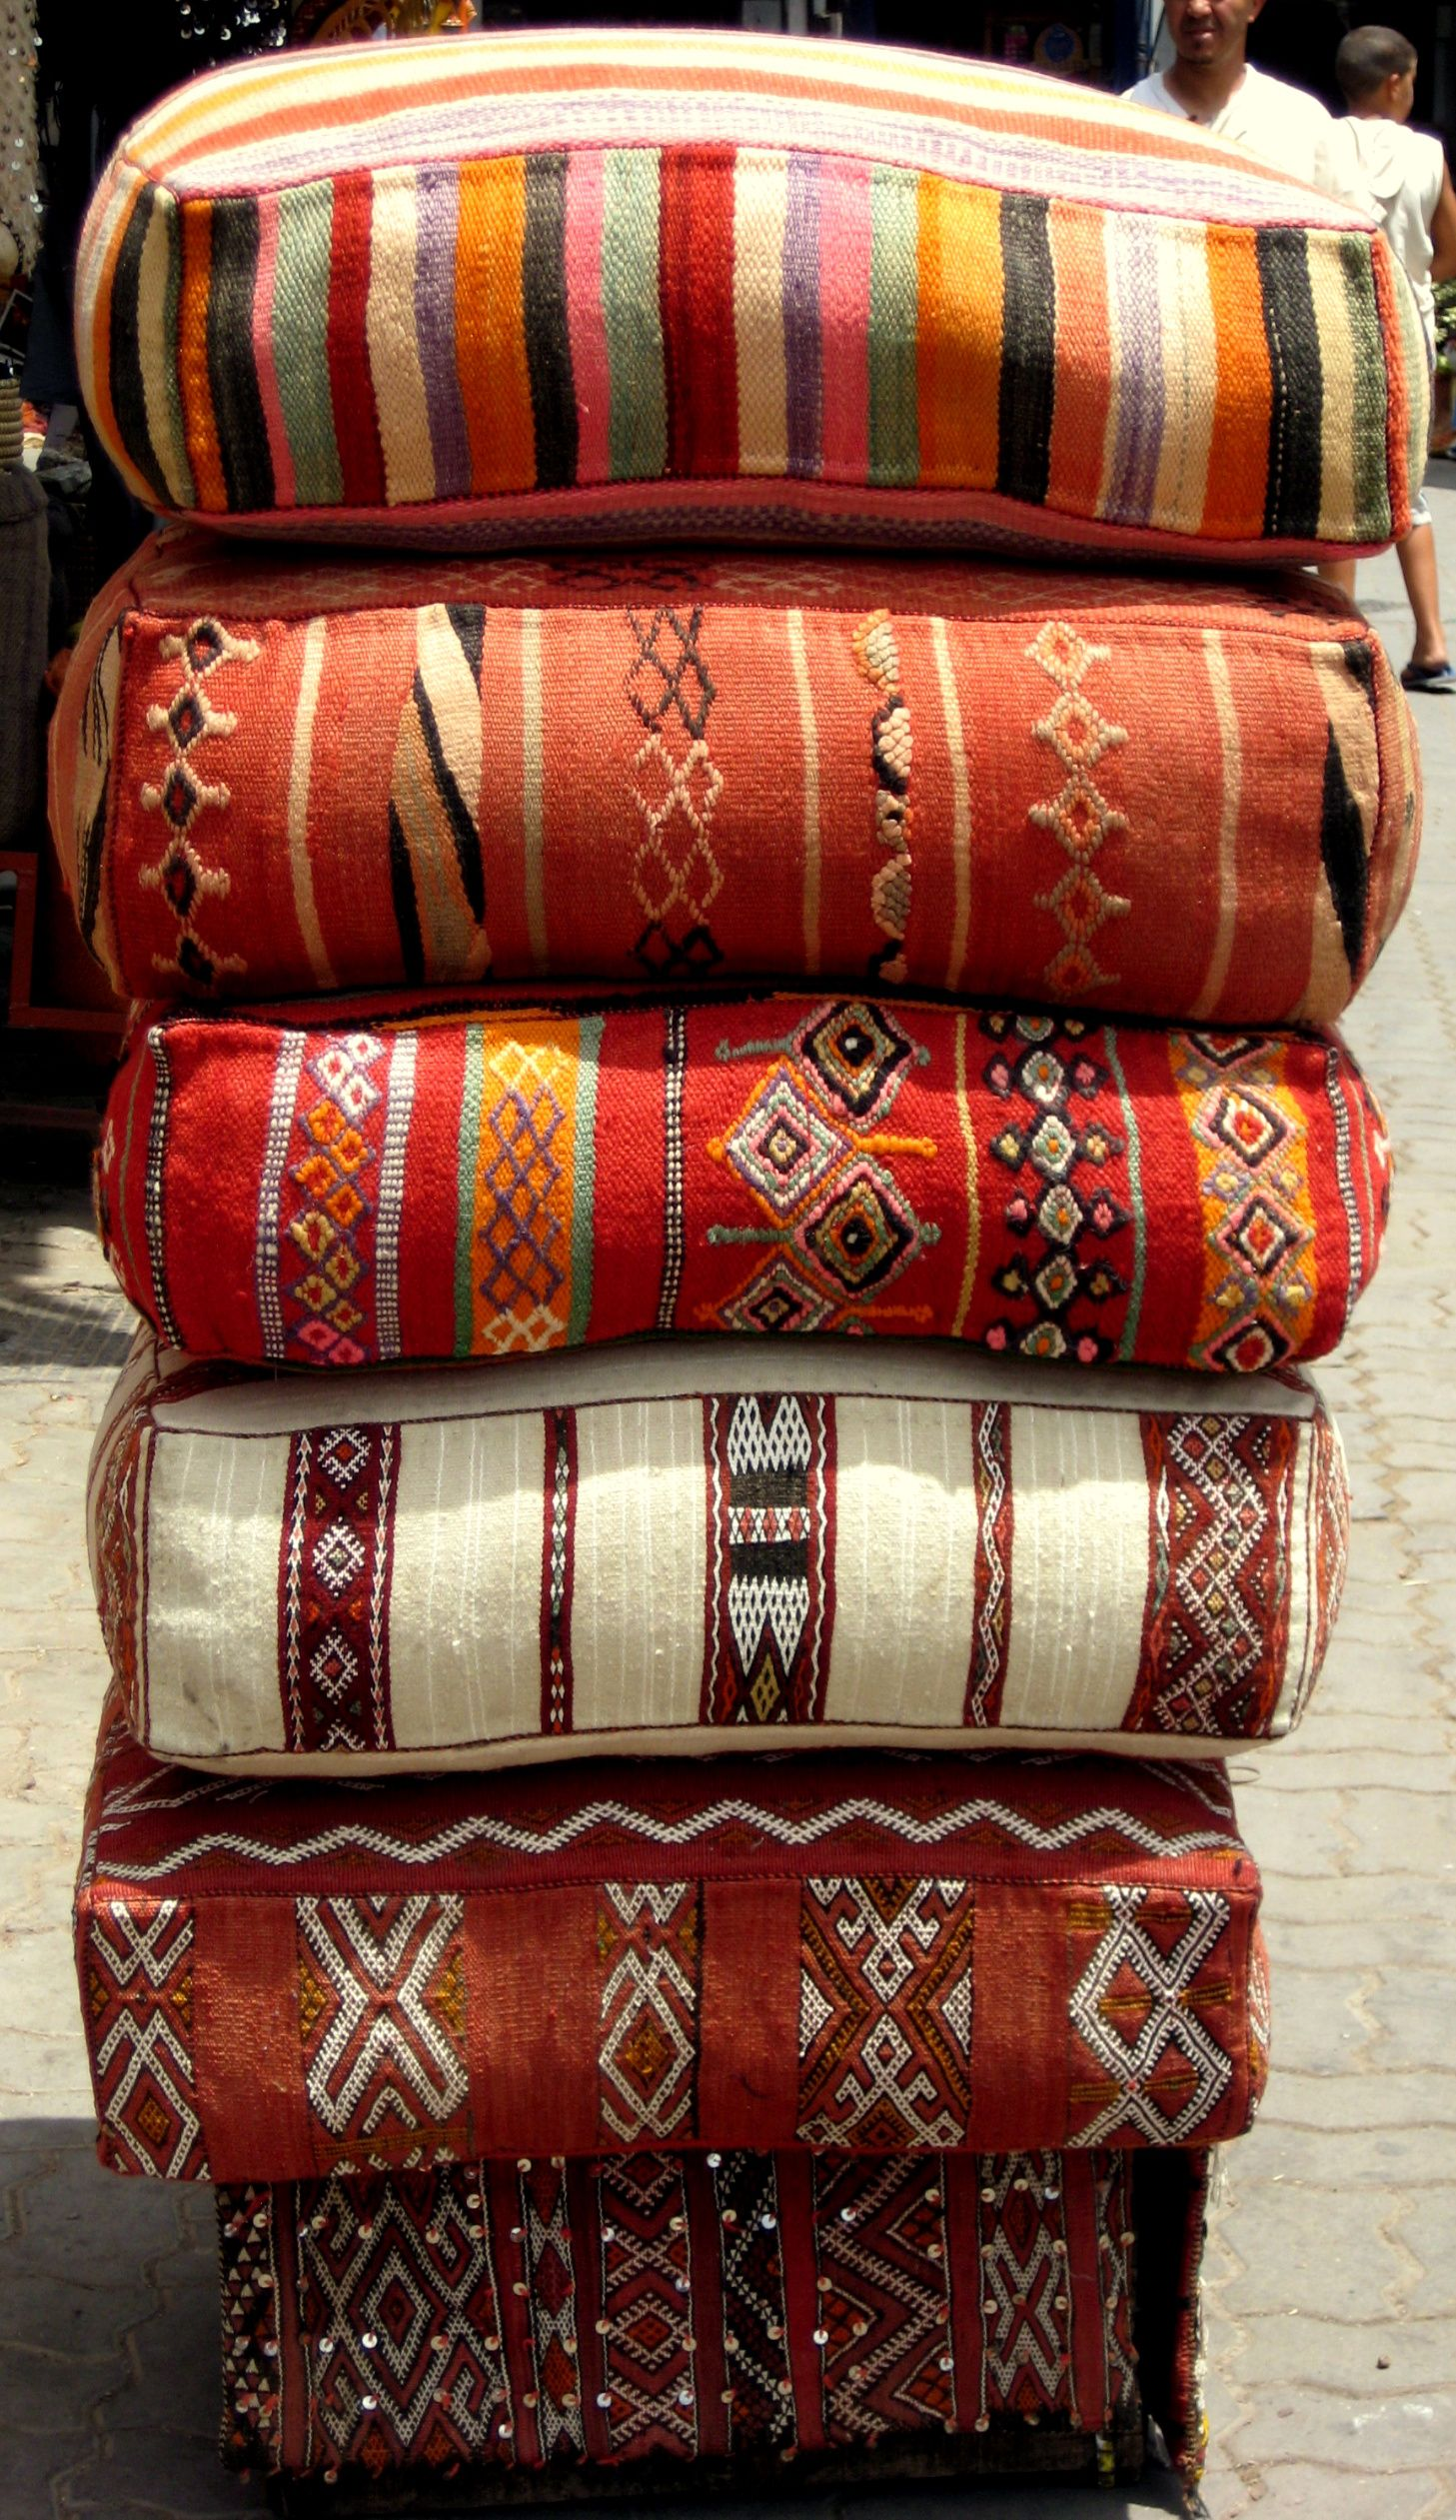 black jute cushions seat pillow seats giant endearing for large covers cushion floor lounge moroccan sitting amusing red pillows